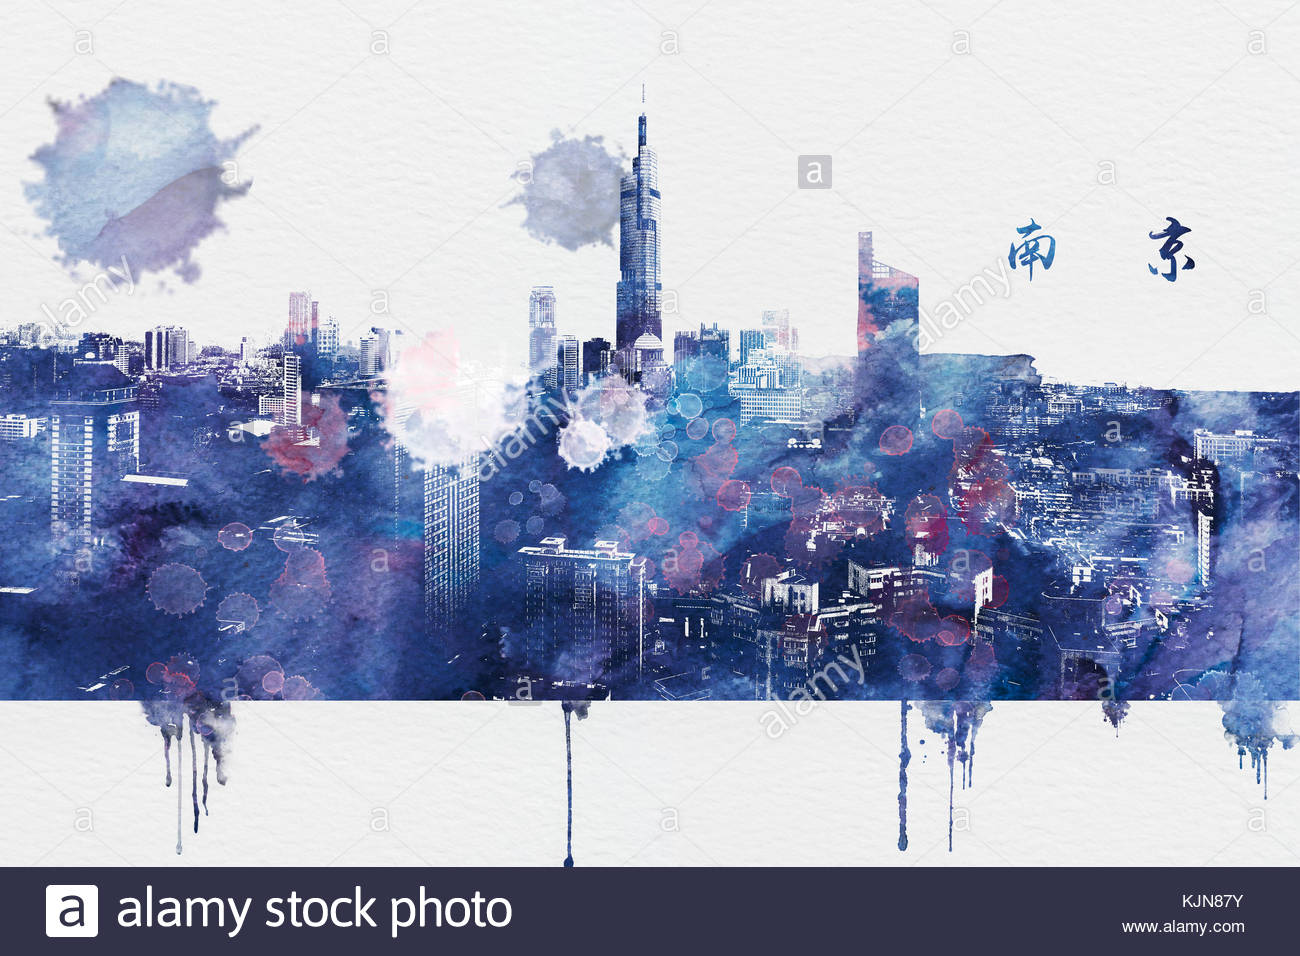 Nanjing ink painting - Stock Image